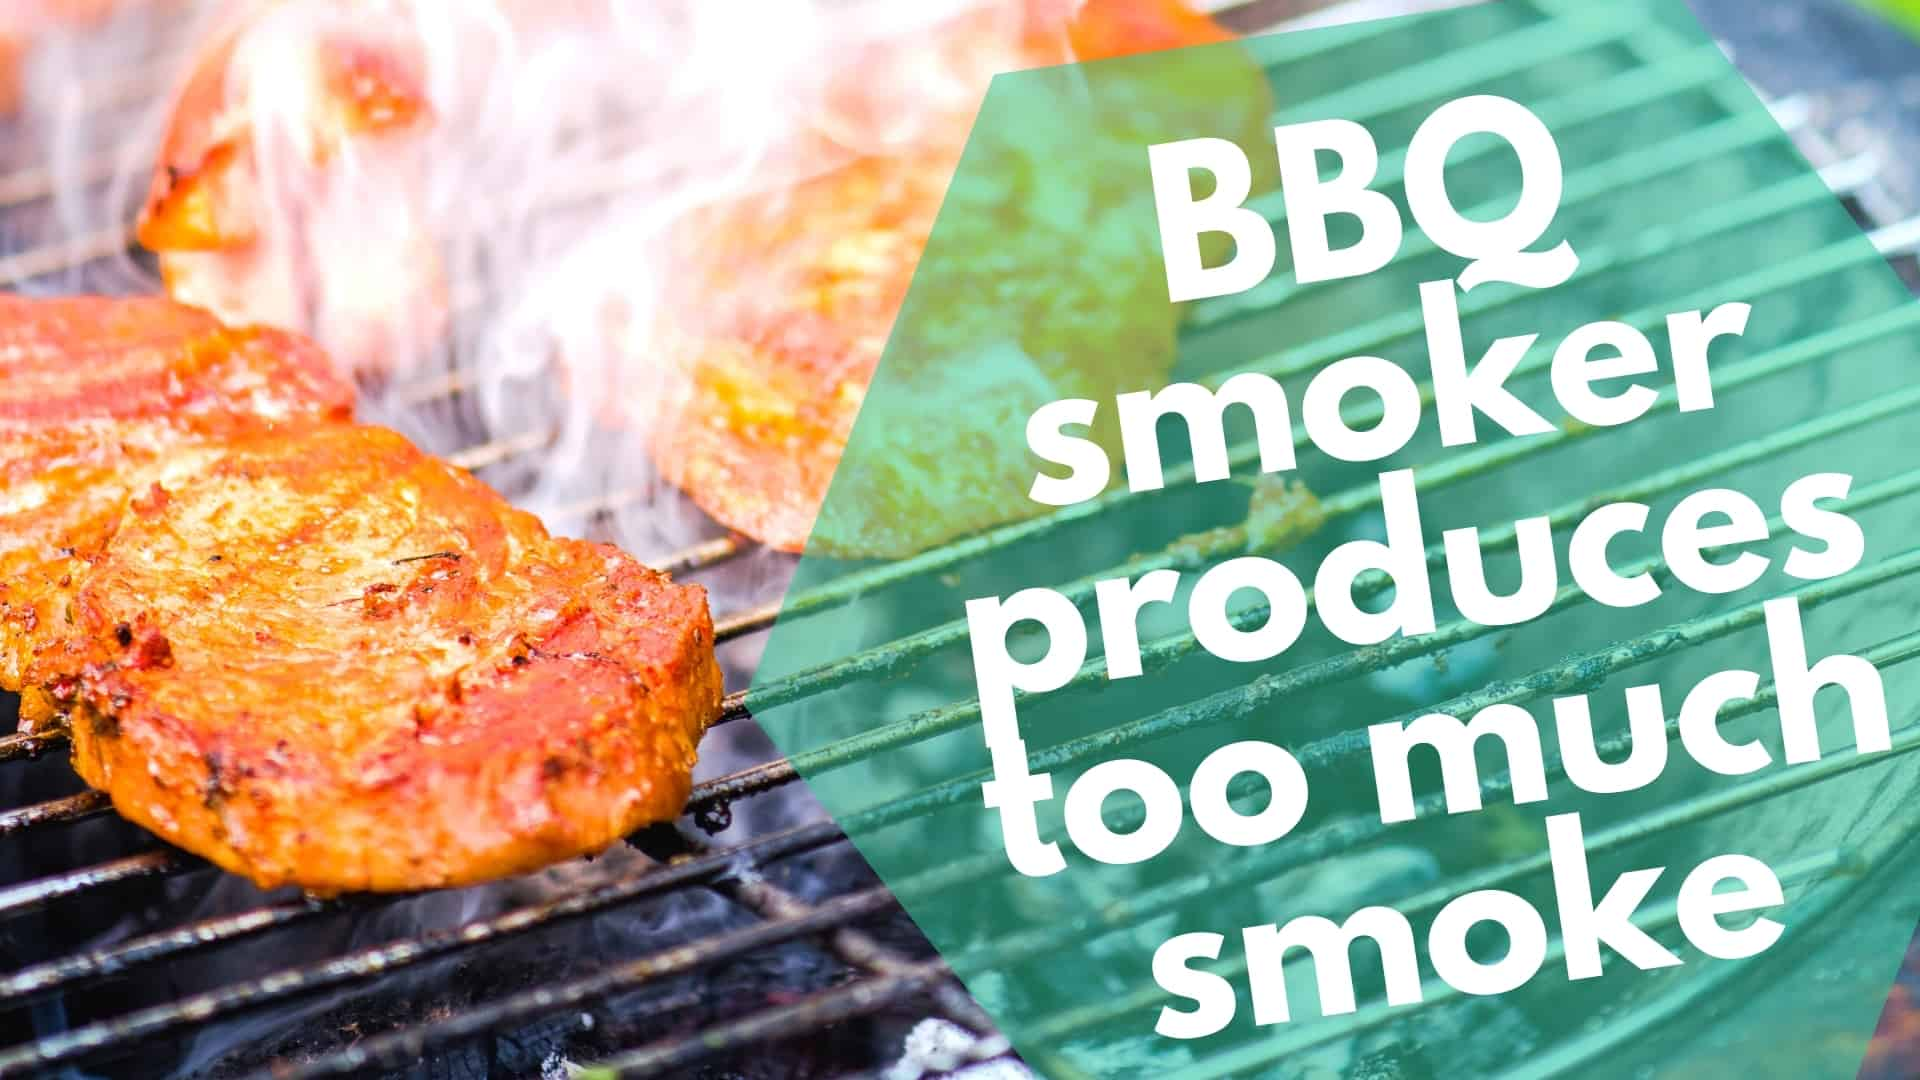 BBQ smoker produces too much smoke